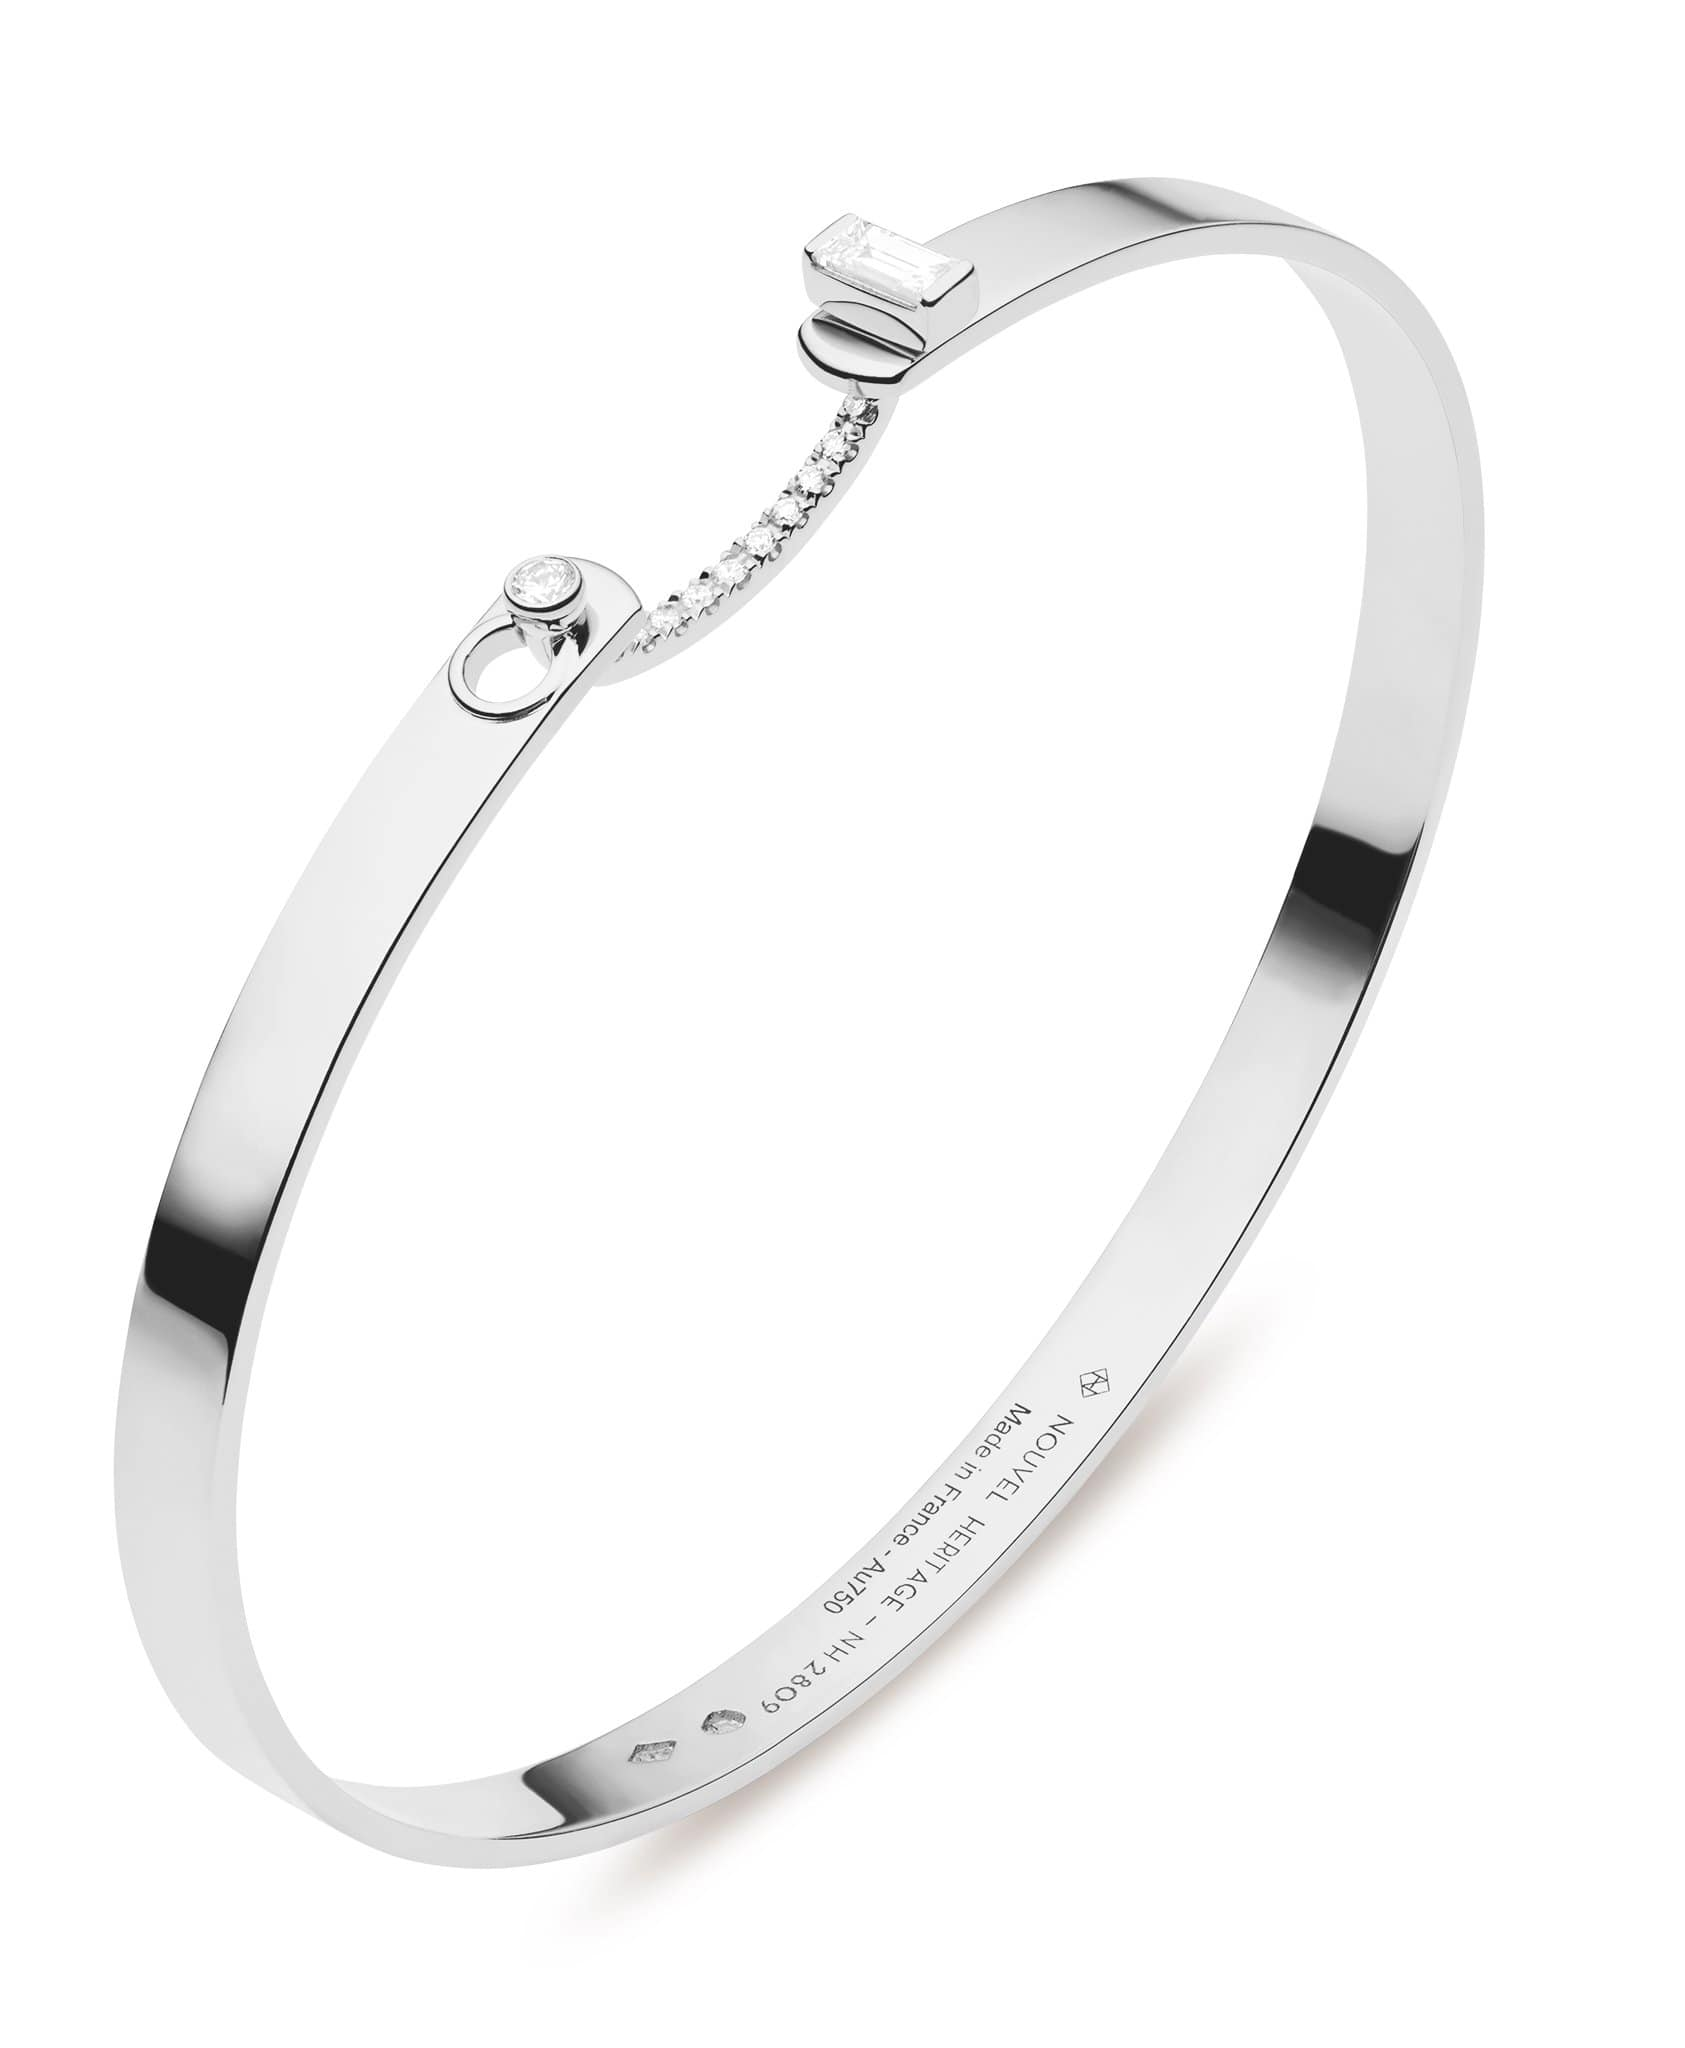 Dinner Date Mood Bangle: Discover Luxury Fine Jewelry | Nouvel Heritage || White Gold